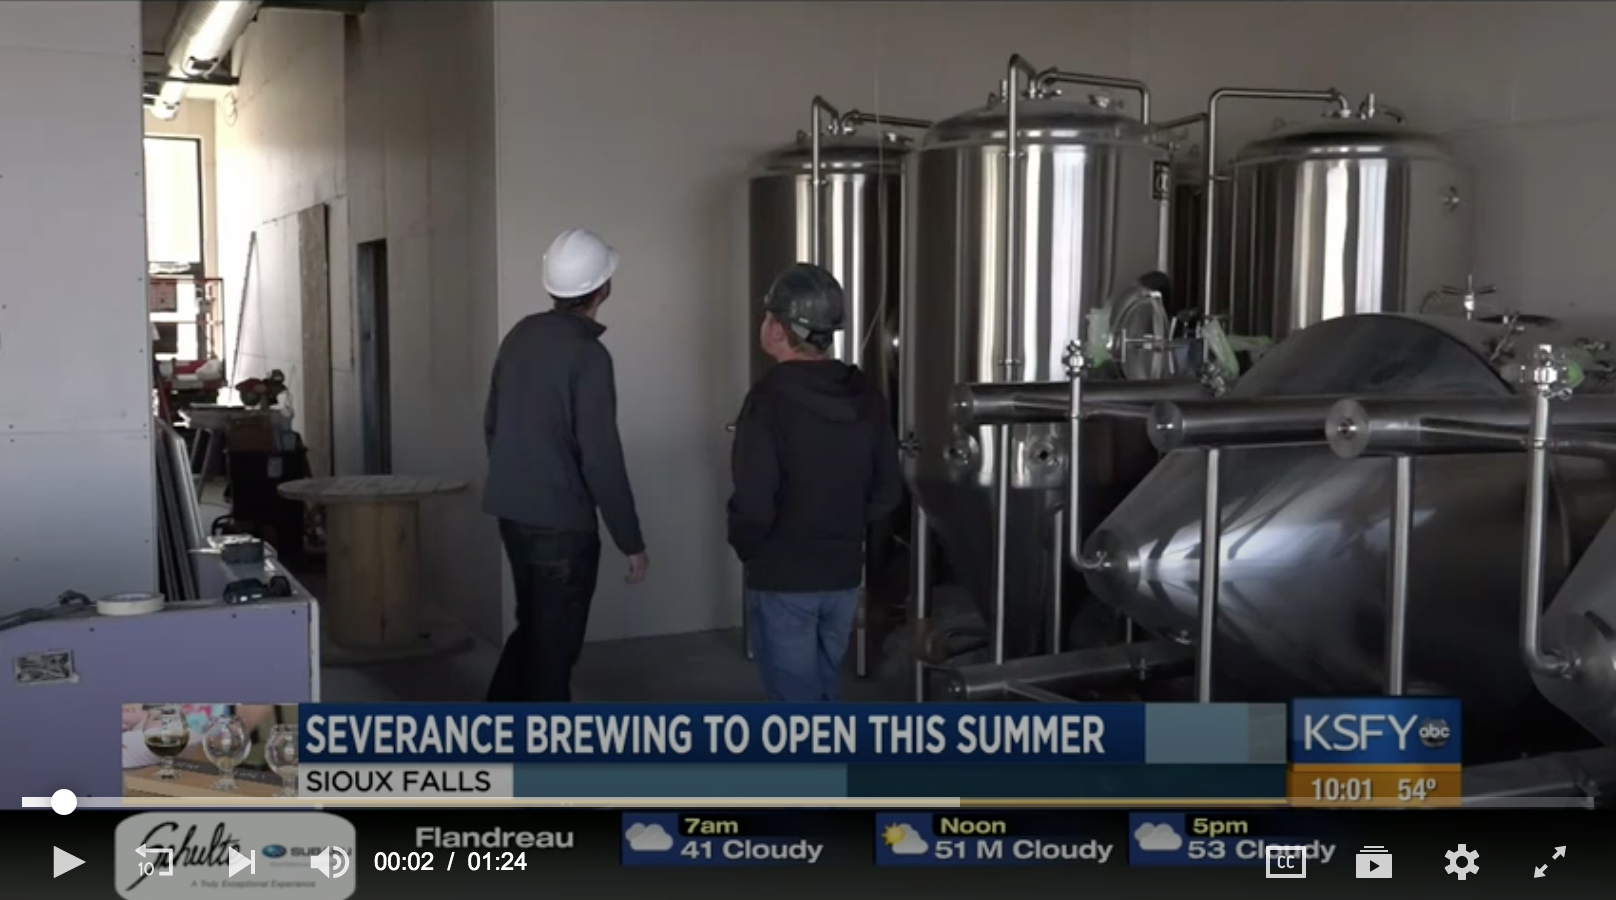 Severance Brewing Co. opening this summer - May 5, 2019 // Ricardo Lewis, KSFYUptown Sioux Falls is going to be bustling with fun things to do this summer and if you're old enough you can experience a brand new one of a kind brewery opening this summer.